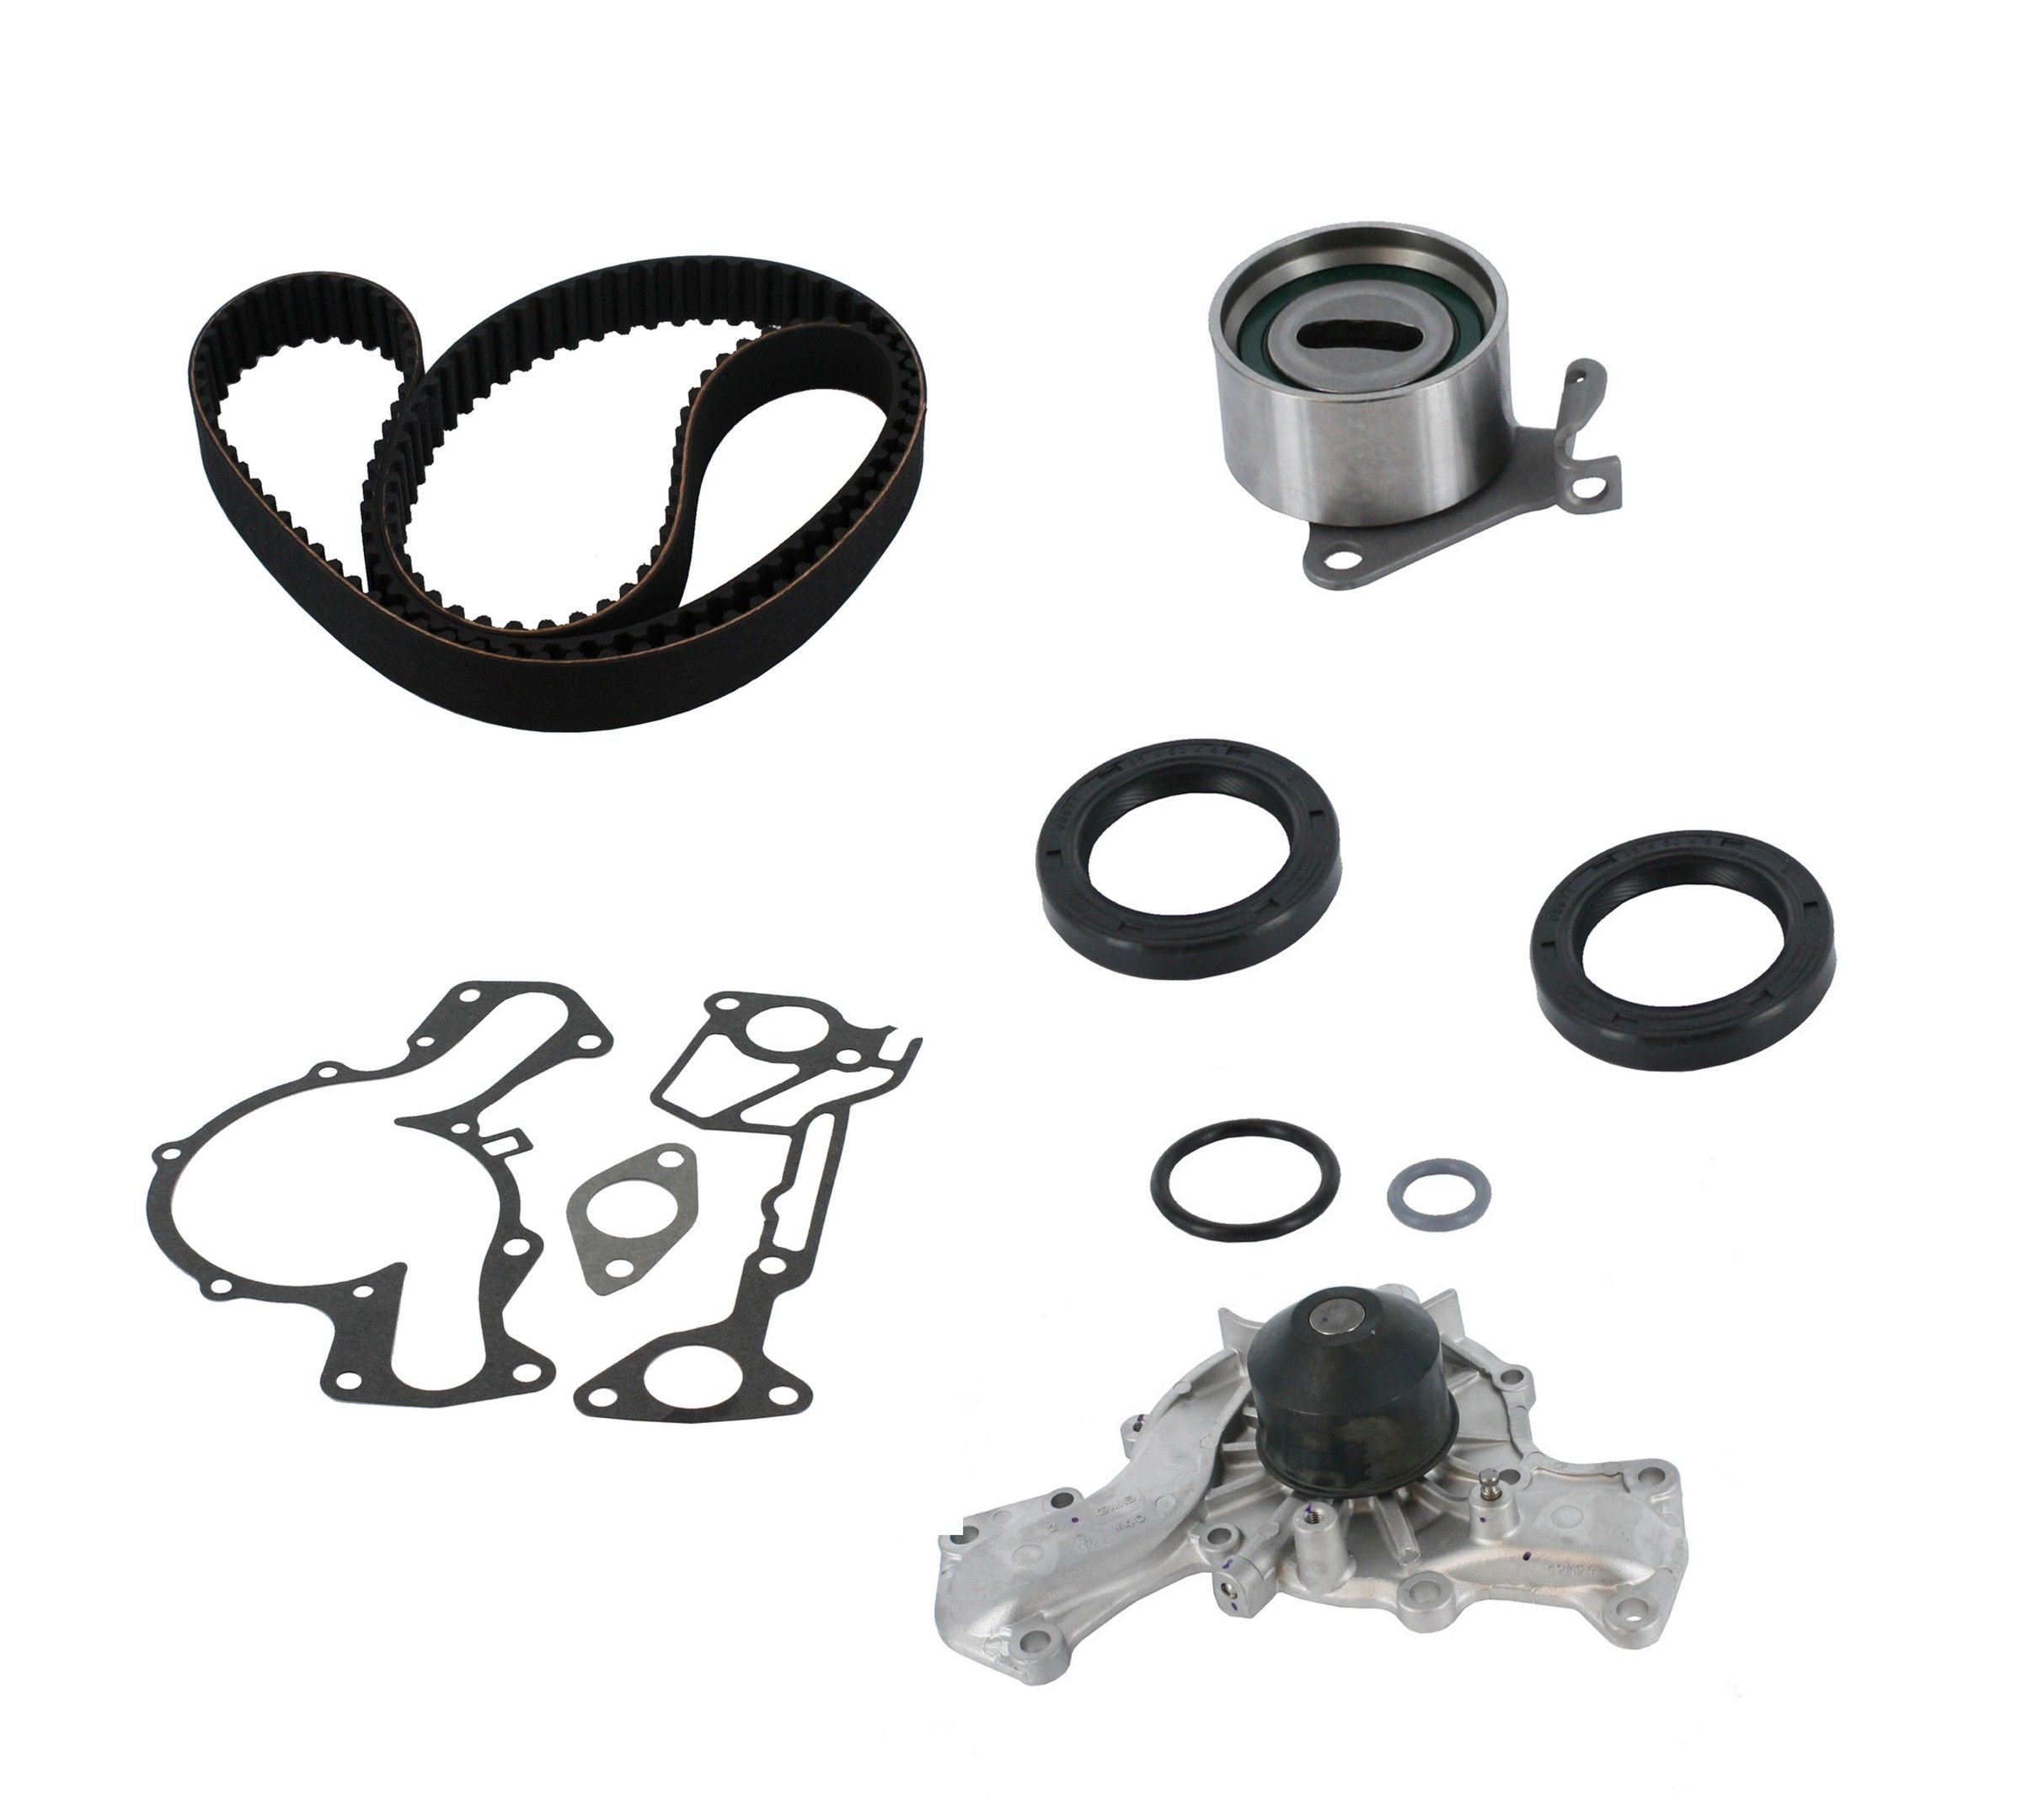 Mitsubishi Galant Engine Timing Belt Kit With Water Pump Replacement Belts 1988 6 Cyl 30l Crp Pp139lk1 Pro Series Plus Contitech Interference Eng